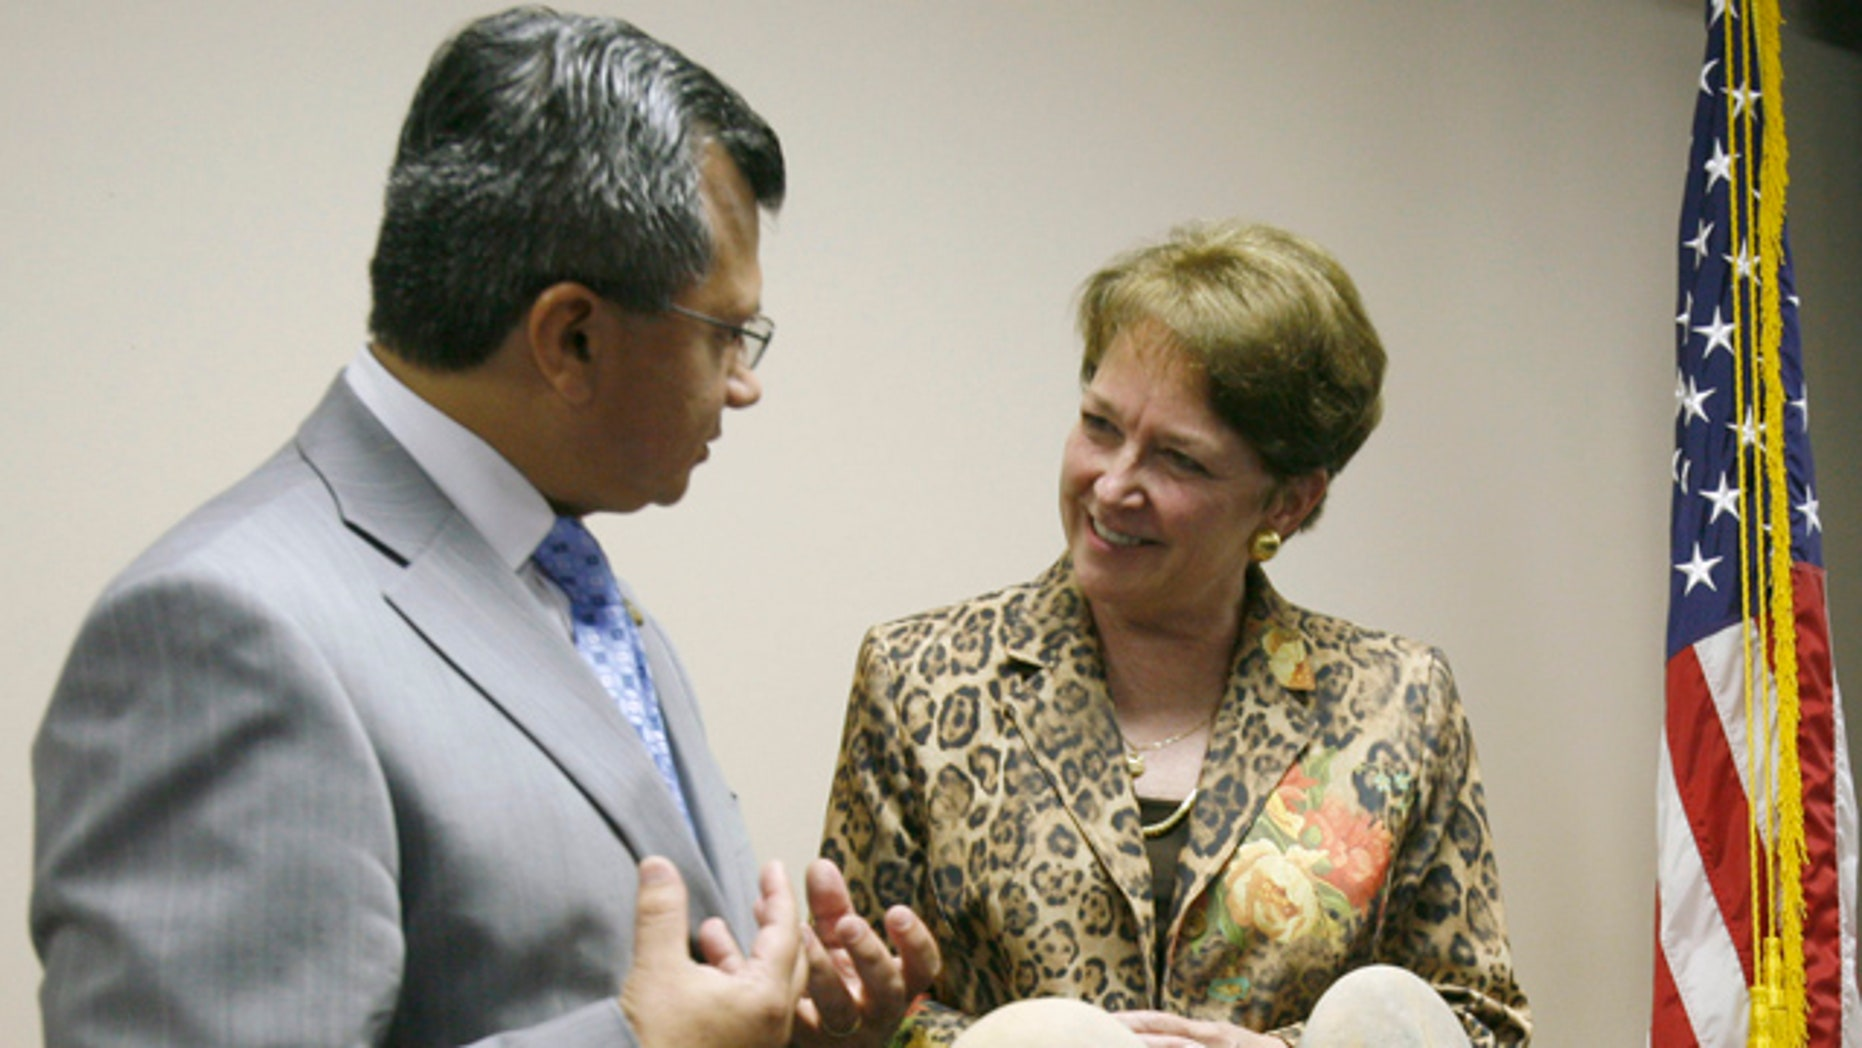 In this Sept. 23, 2008, file photo, U.S. ambassador to Ecuador Heather Hodges, right, speaks with Juan Carlos Toledo, consul general of the Ecuadorian consulate in Miami, by a display of pre-Columbian artifacts after a news conference at the Federal Bureau of Investigation Miami Field Office in North Miami Beach, Fla.